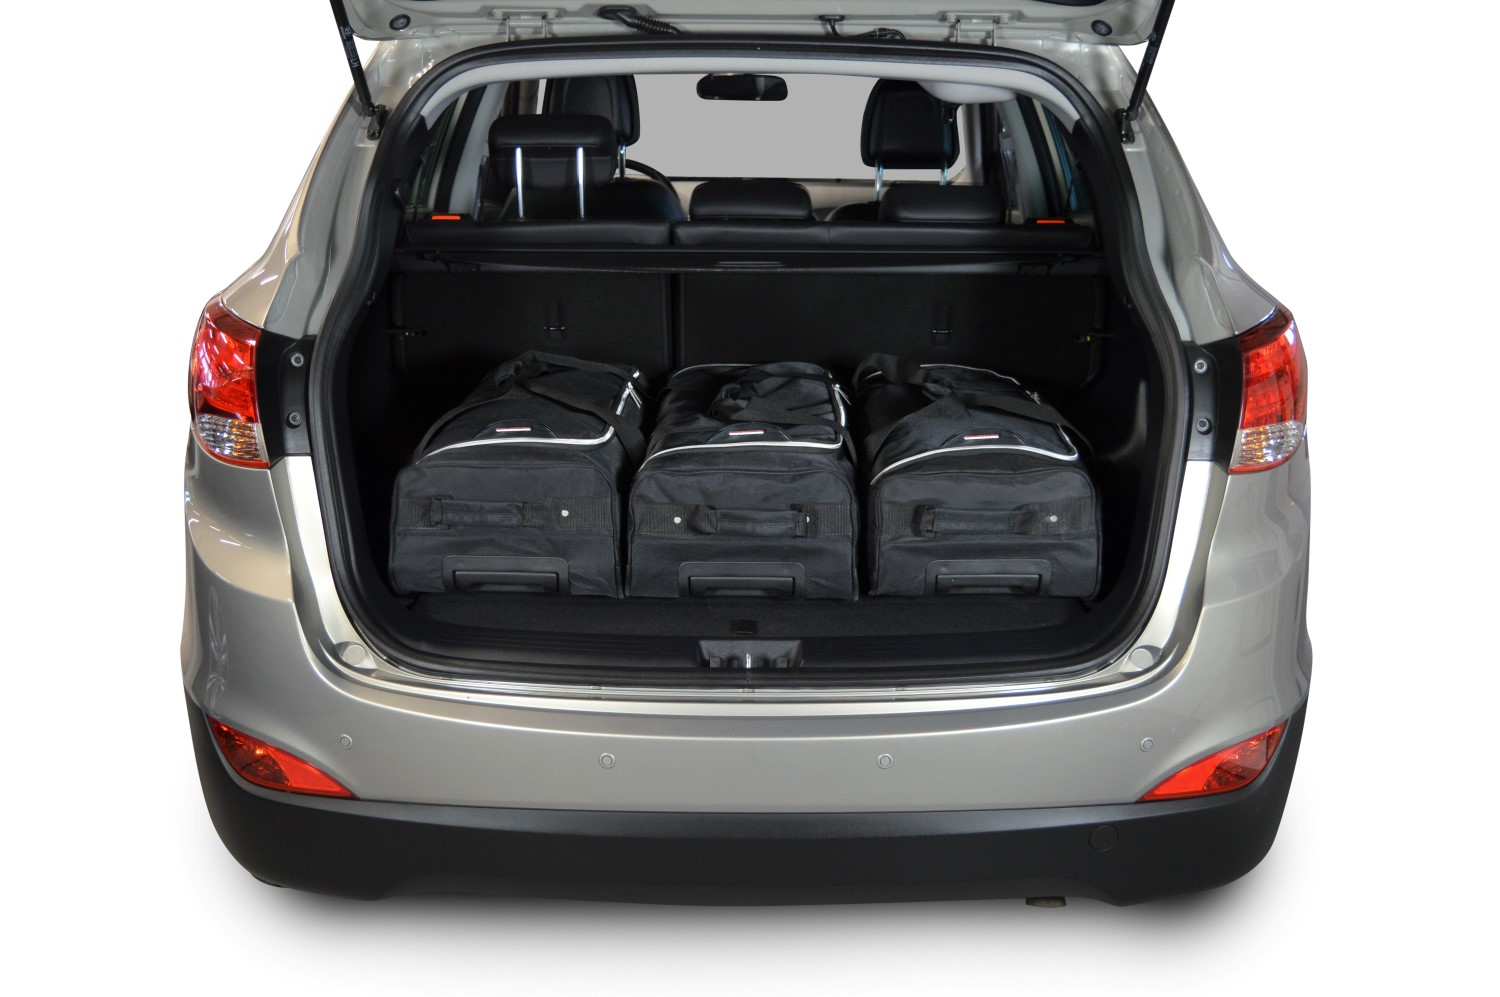 ix35 hyundai ix35 2010 2015 car bags reisetaschen. Black Bedroom Furniture Sets. Home Design Ideas